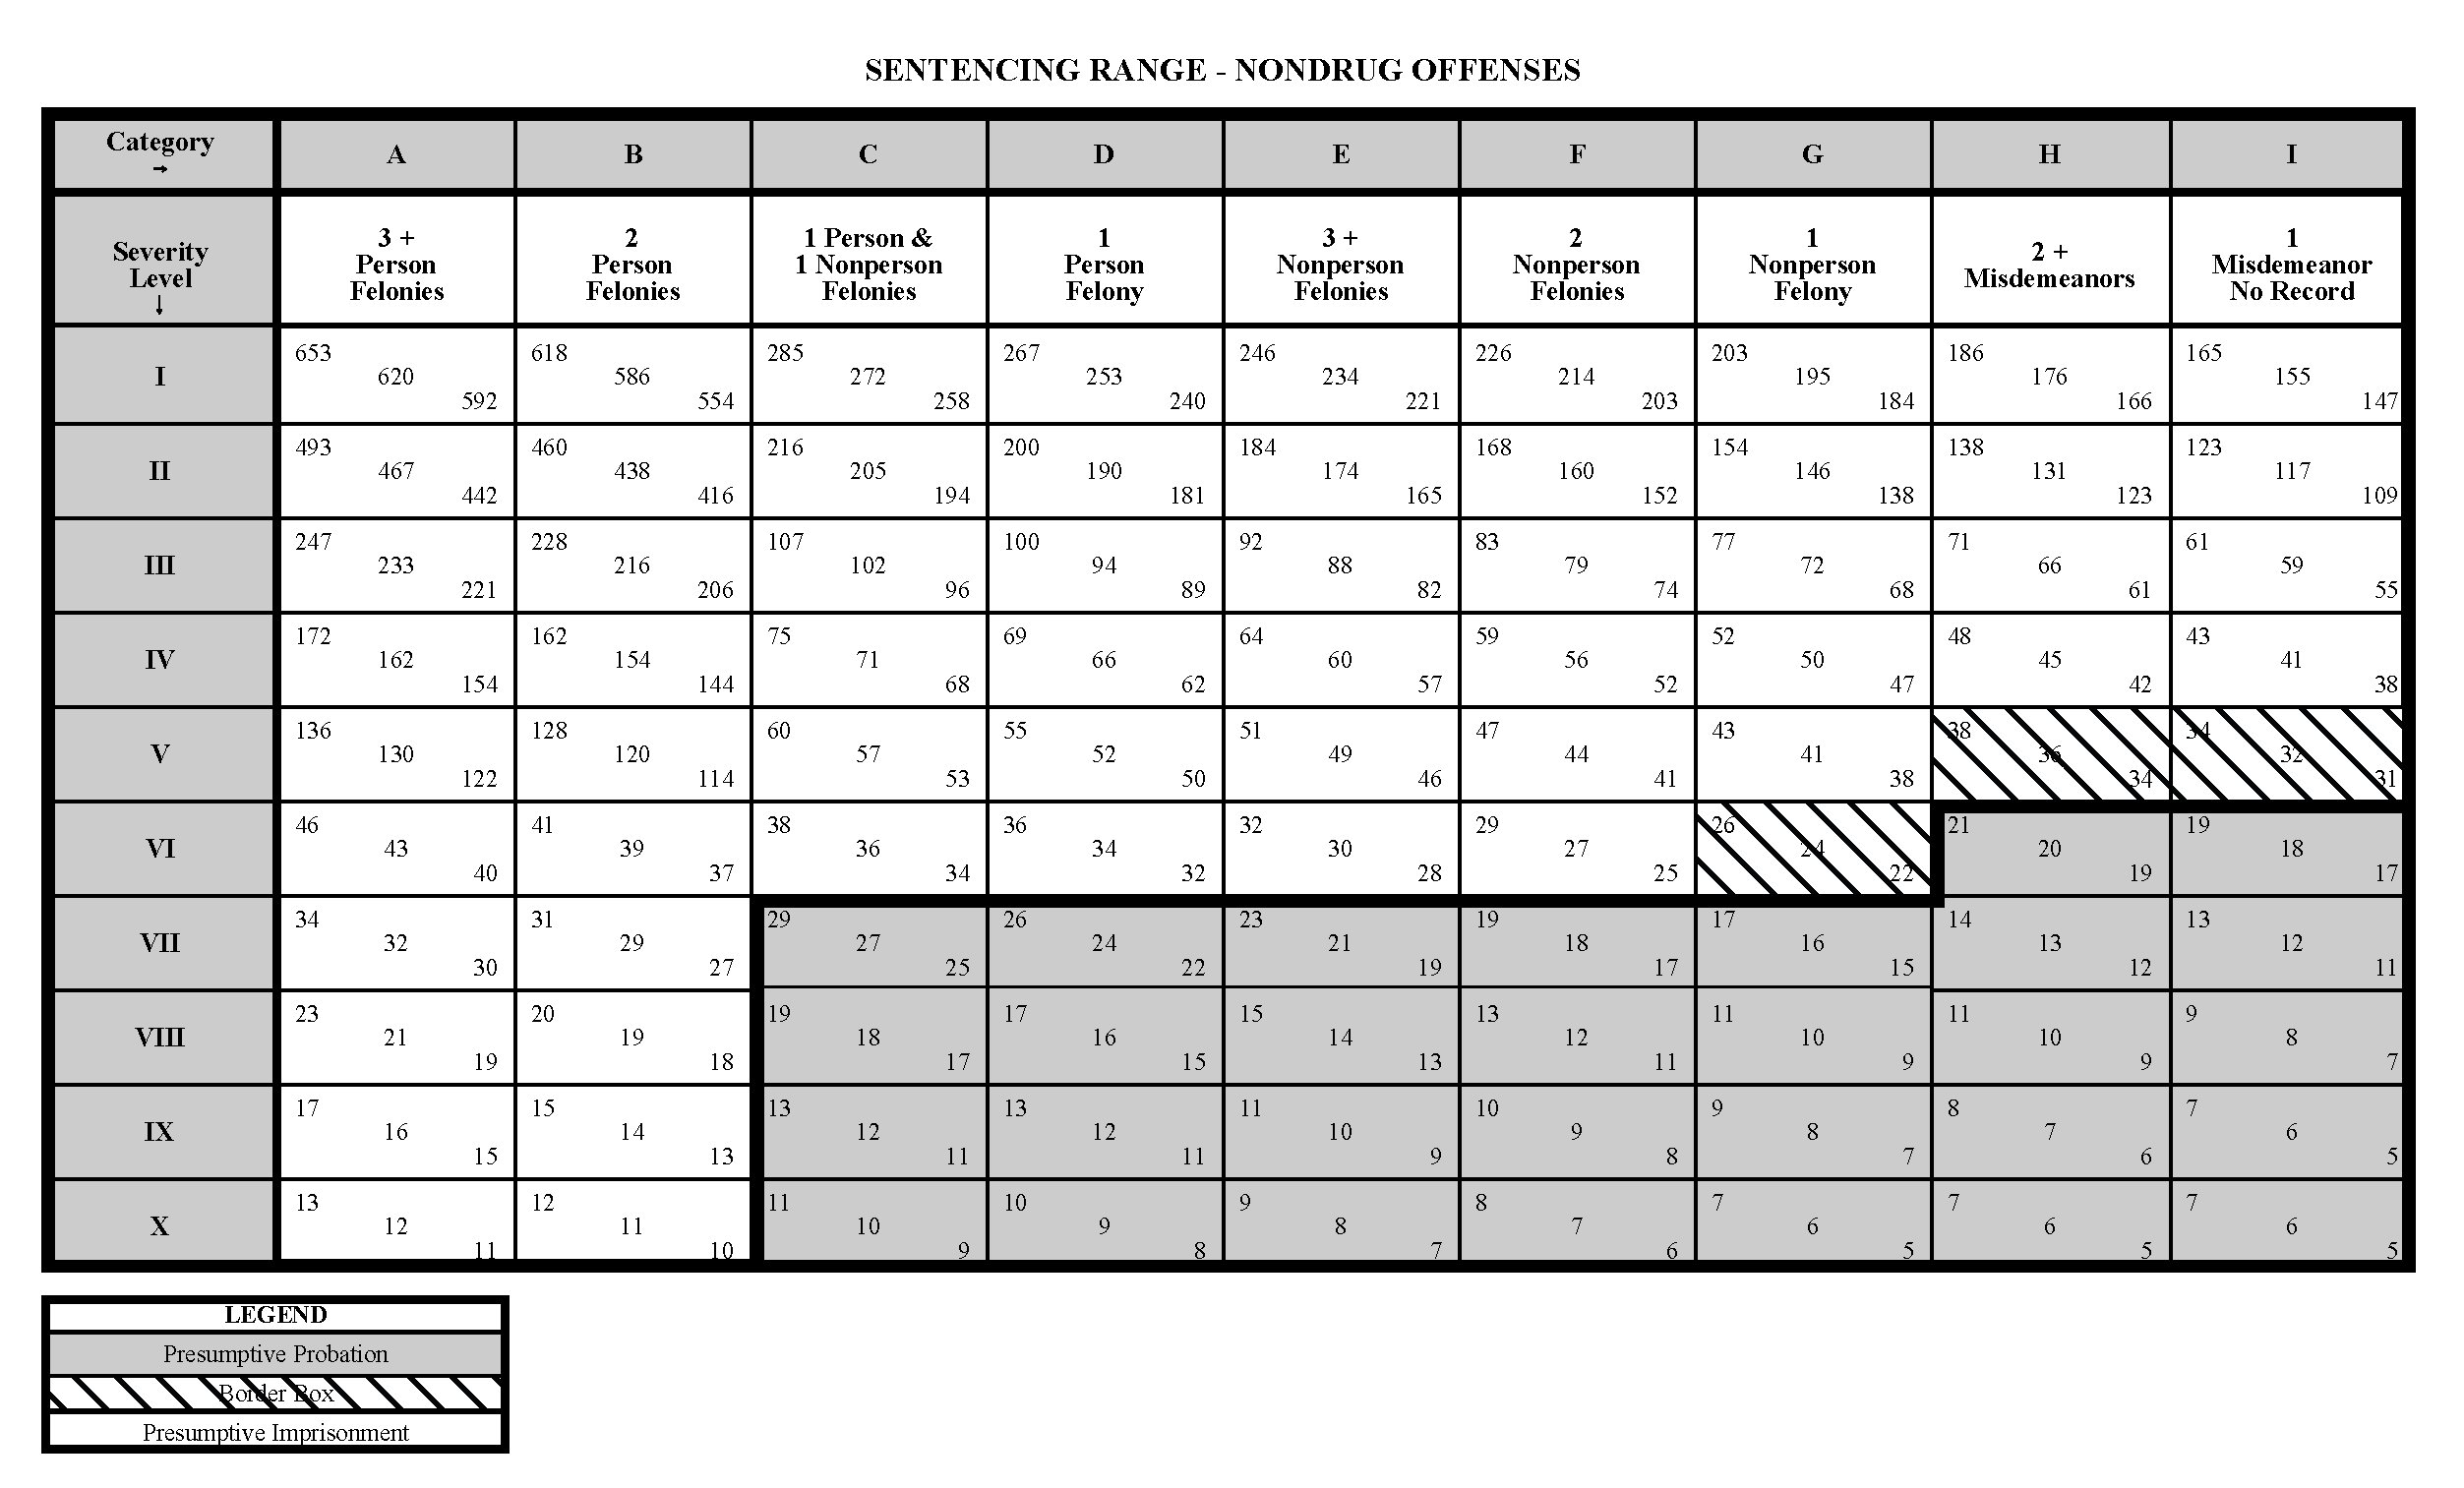 Sentencing guidelines grid for drug crimes.